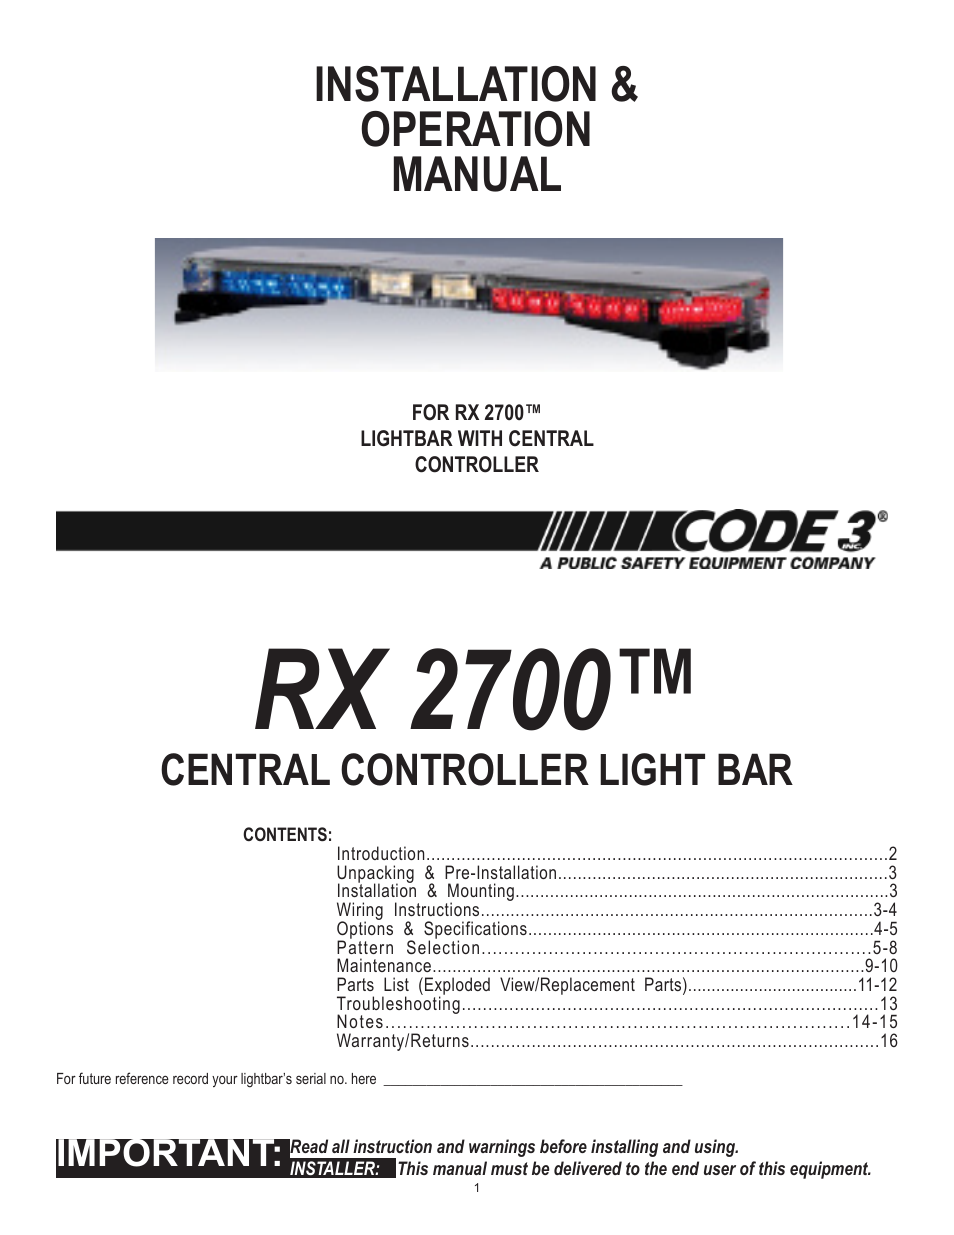 code 3 rx 2700cc page1 code 3 arrowstik wiring diagram code wiring diagrams collection code 3 supervisor wiring diagram at fashall.co